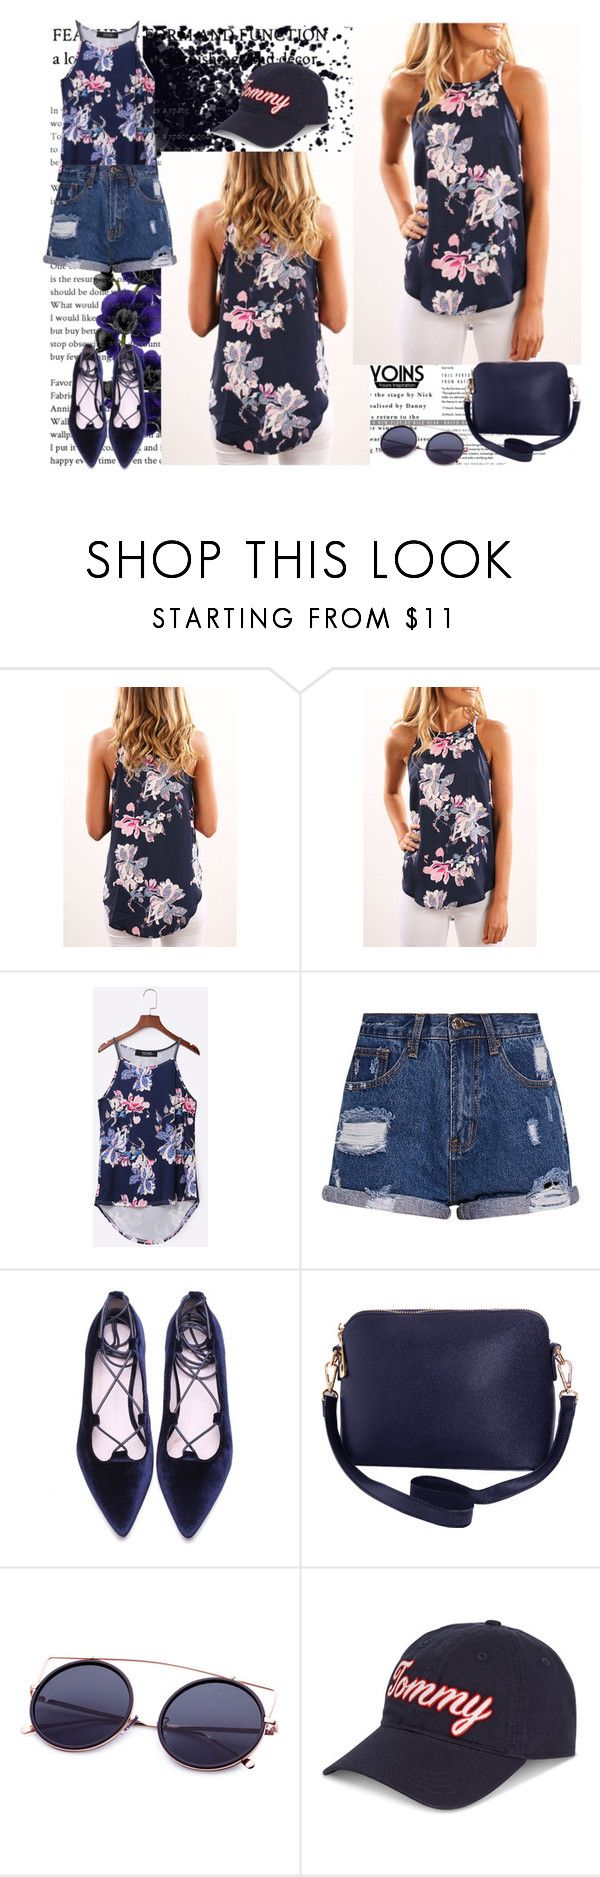 """Random Floral Print Cami Top-Win $20 coupon by Yoins !"" by cooperation ❤ liked on Polyvore featuring Humble Chic and Tommy Hilfiger"